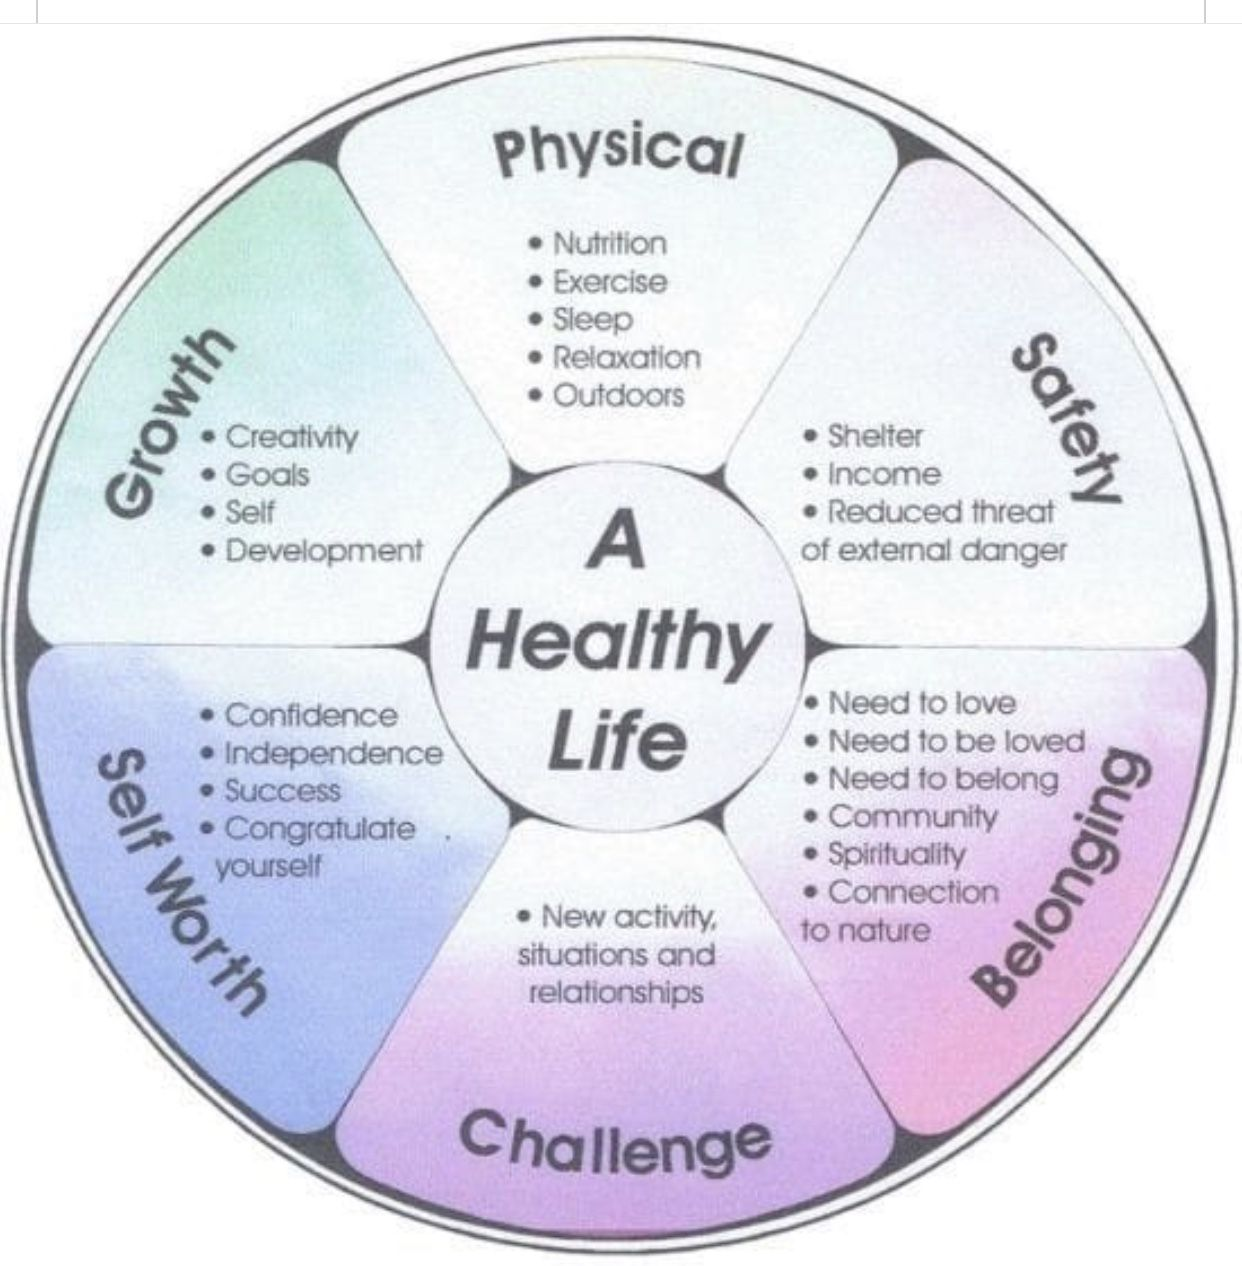 Components Of A Healthy Life Genesisbalance Healthylife Psychotherapy Fayettevillenc Bestlife Wellness Wheel Life Wheel Of Life